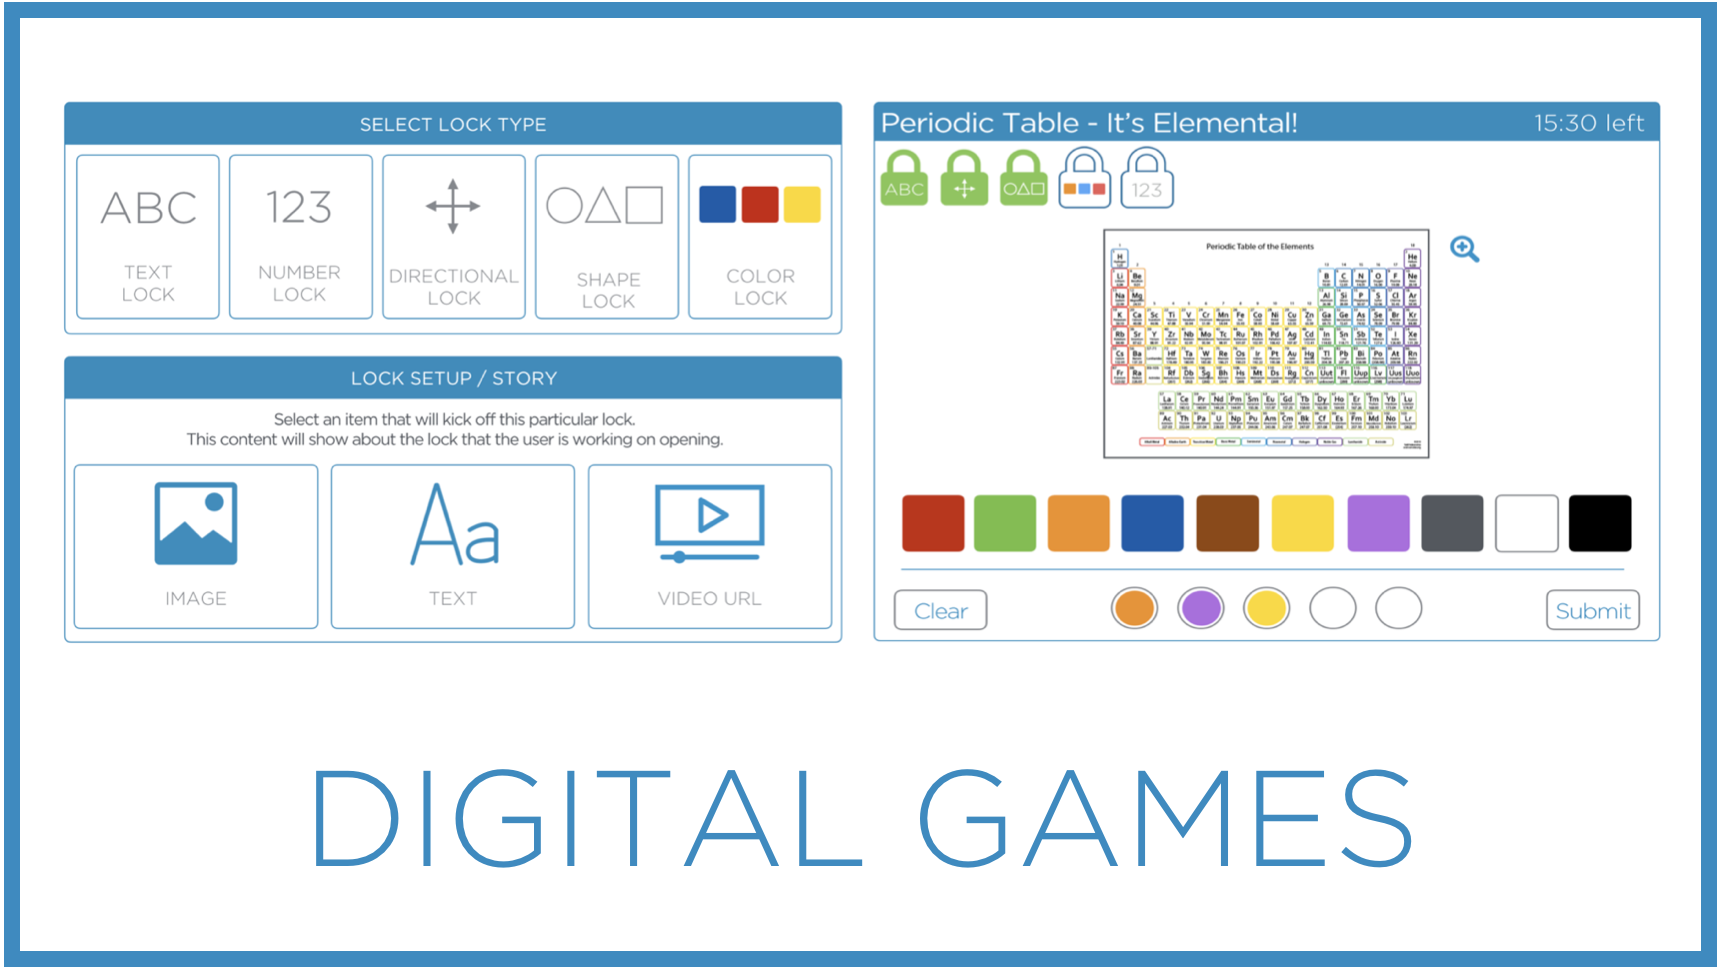 Learn how to create and share games Breakout EDU Digital Games on our easy to use platform.